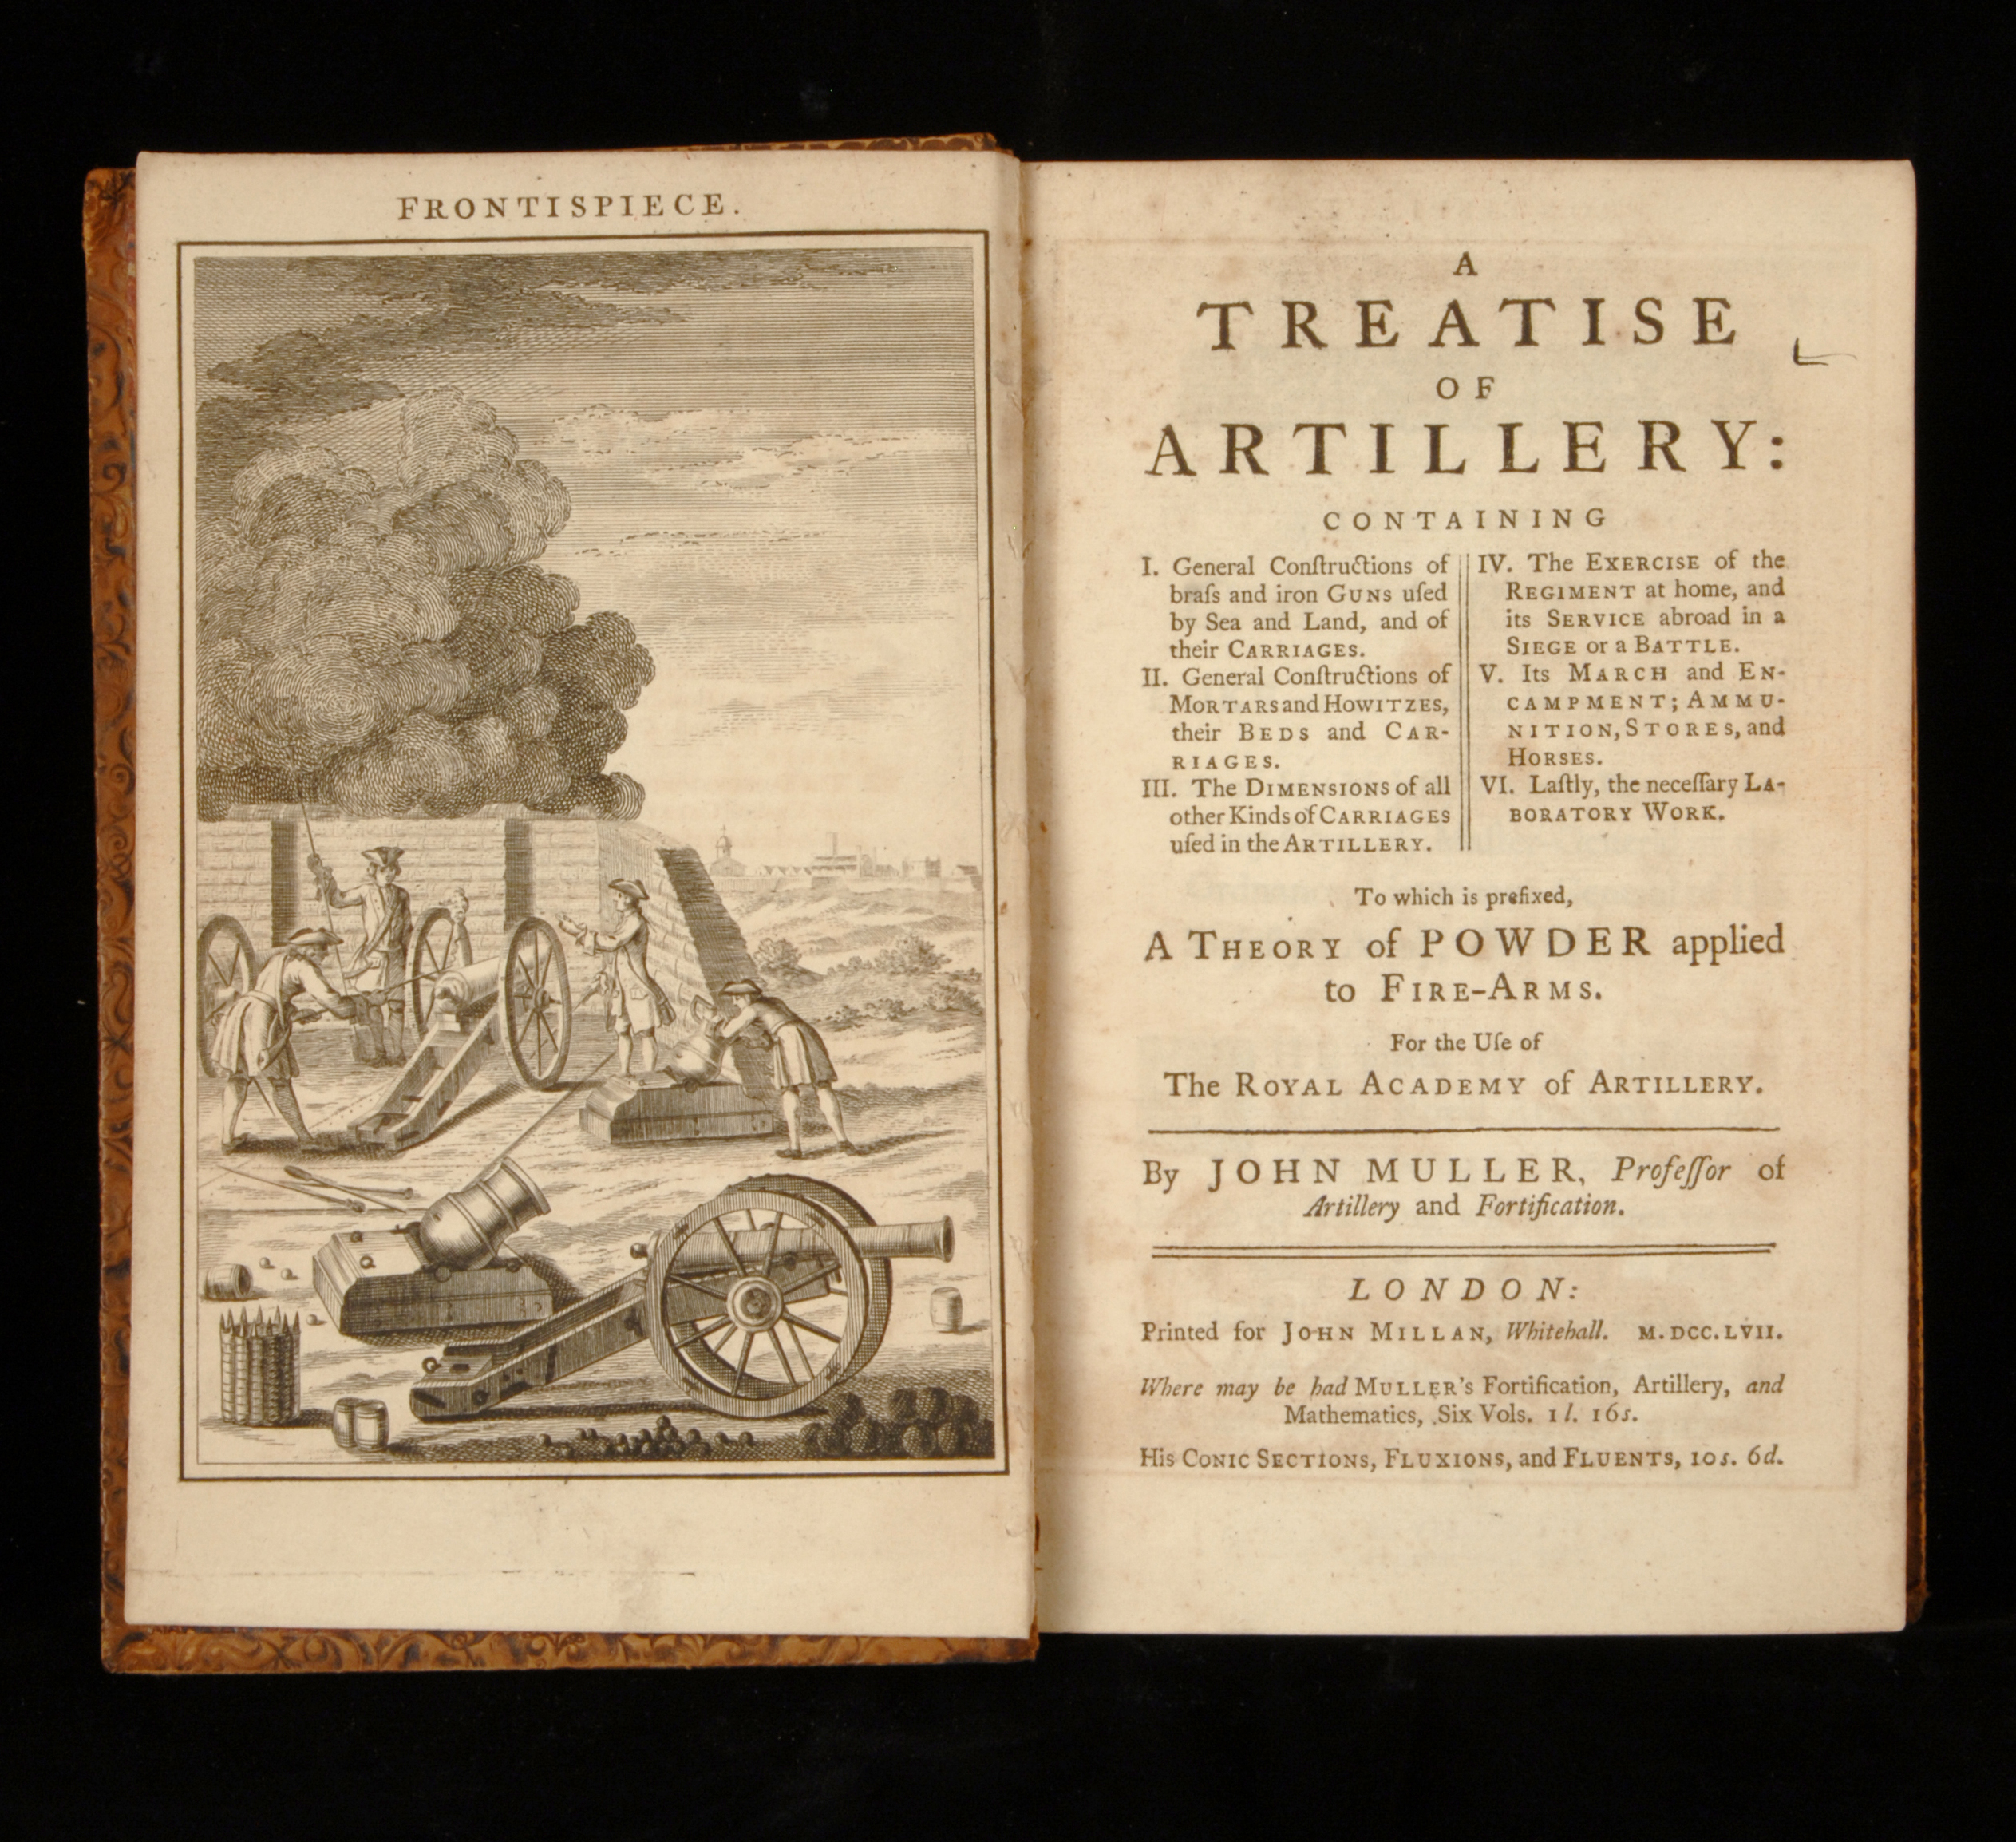 A Treatise of Artillery, John Muller, London: Printed for John Millan, 1757